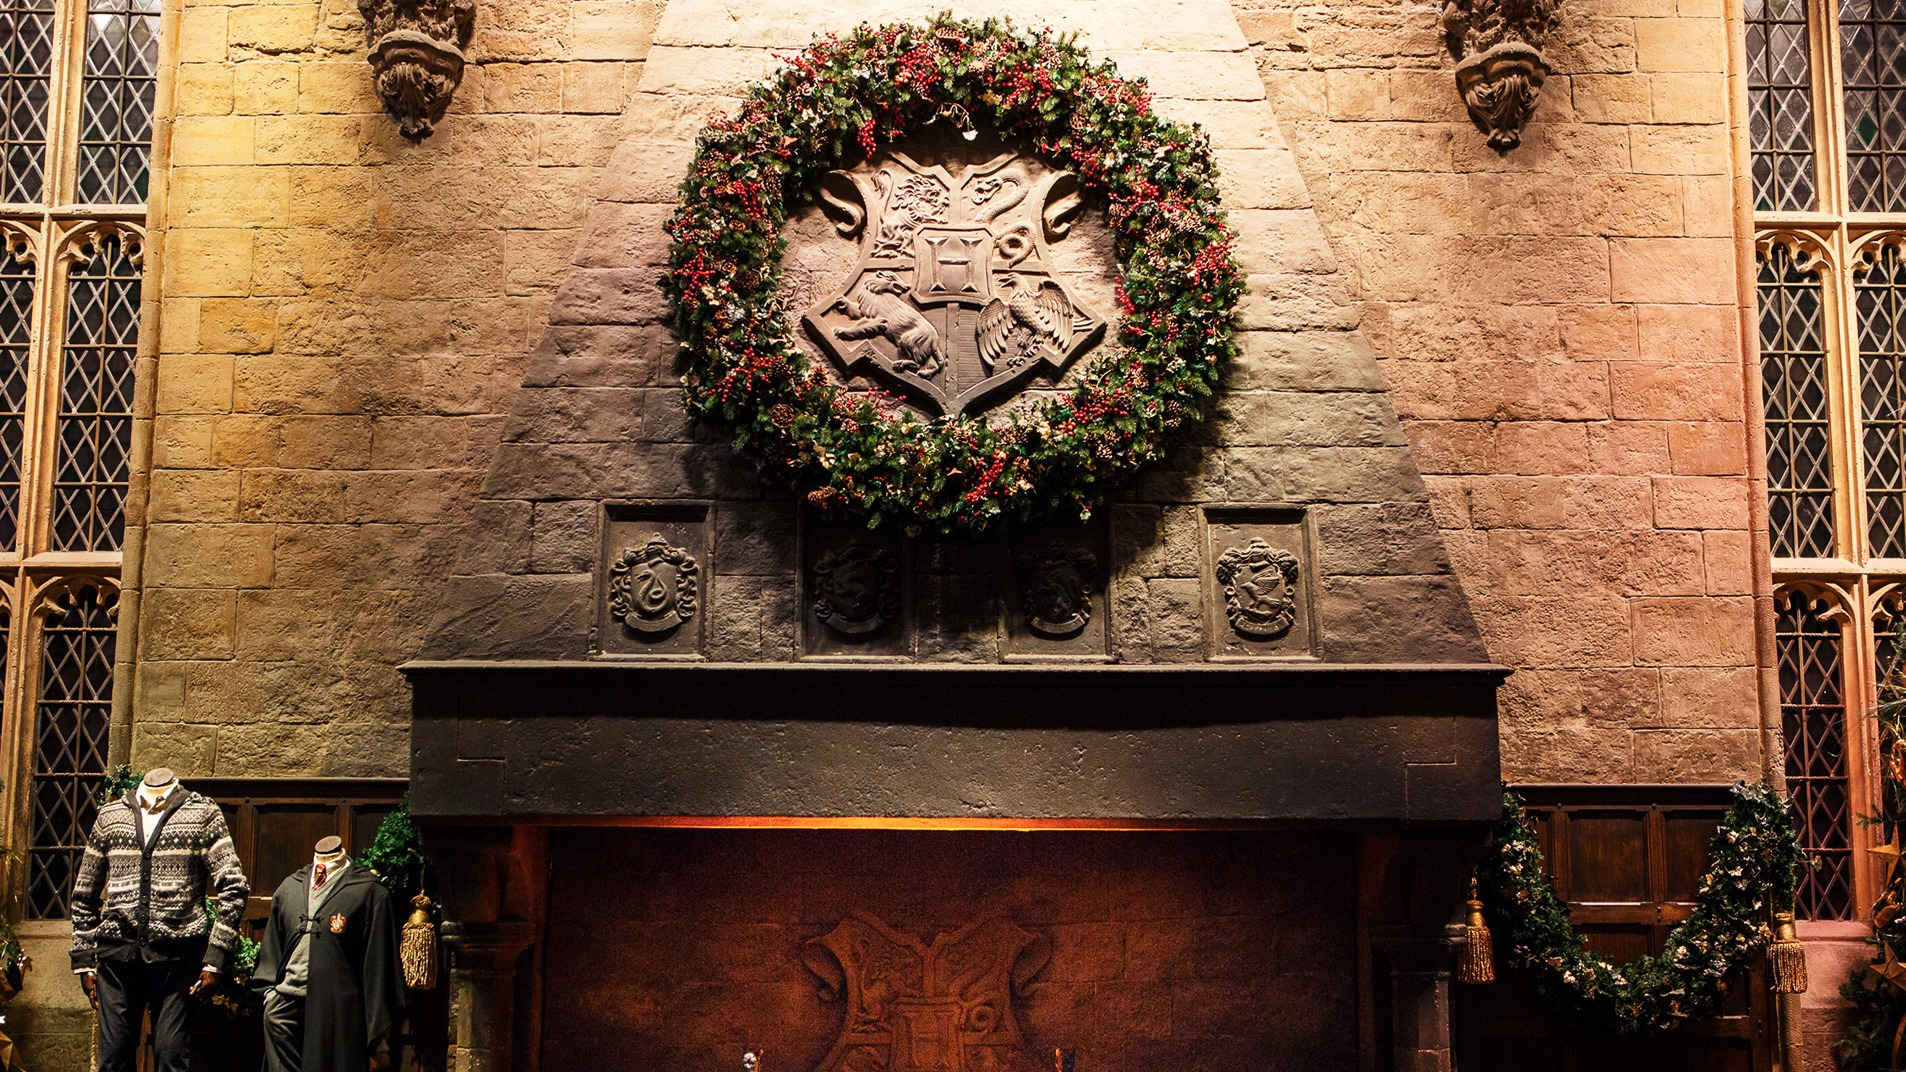 Video call background - Festive Great Hall Fireplace